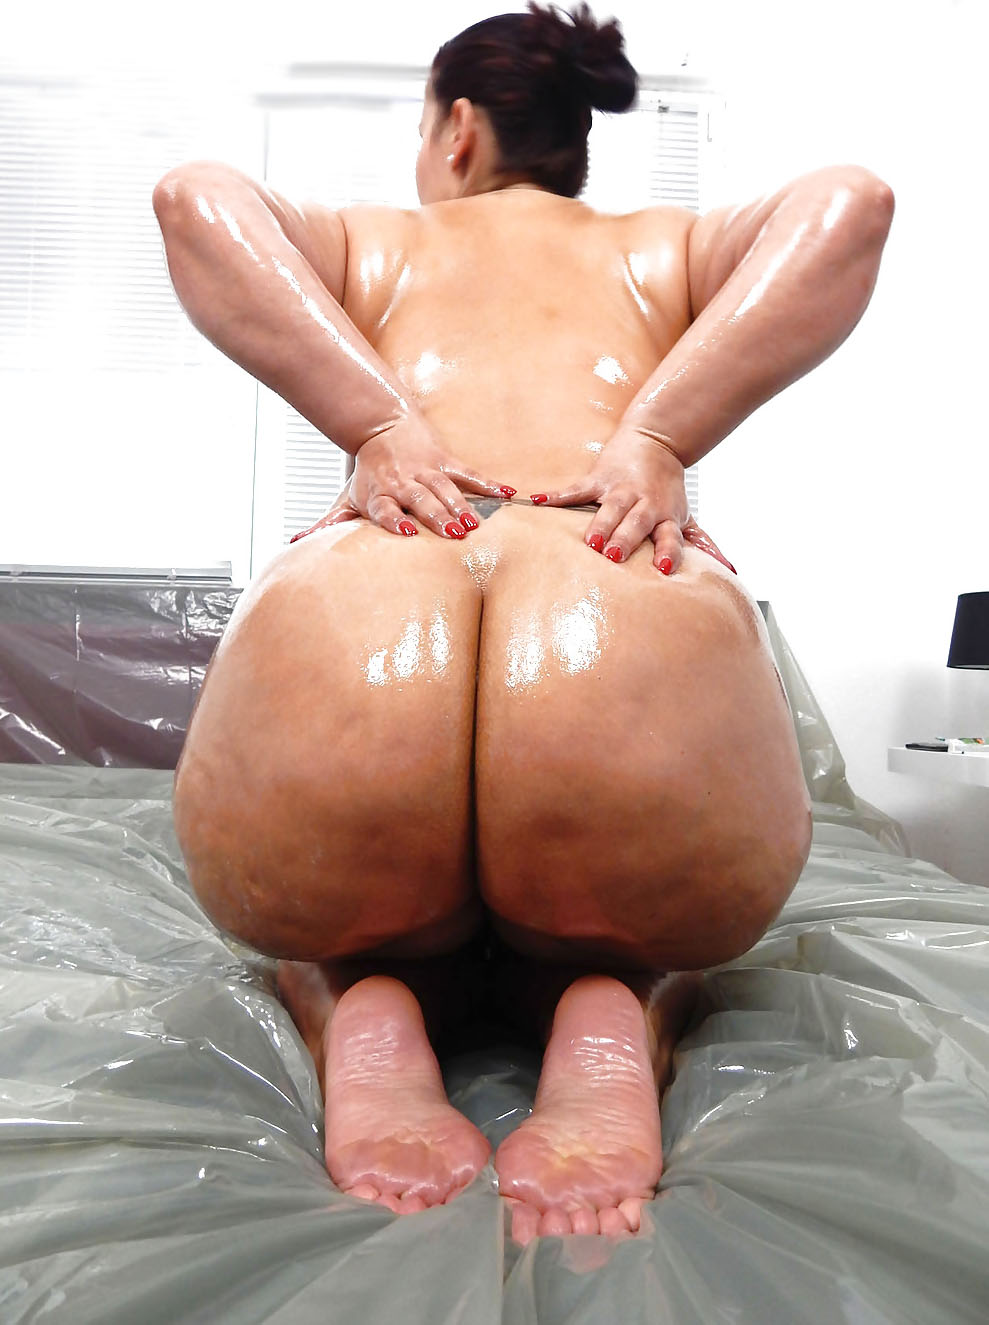 Oiled Up Bbw Cums With Vibrator And Fingers